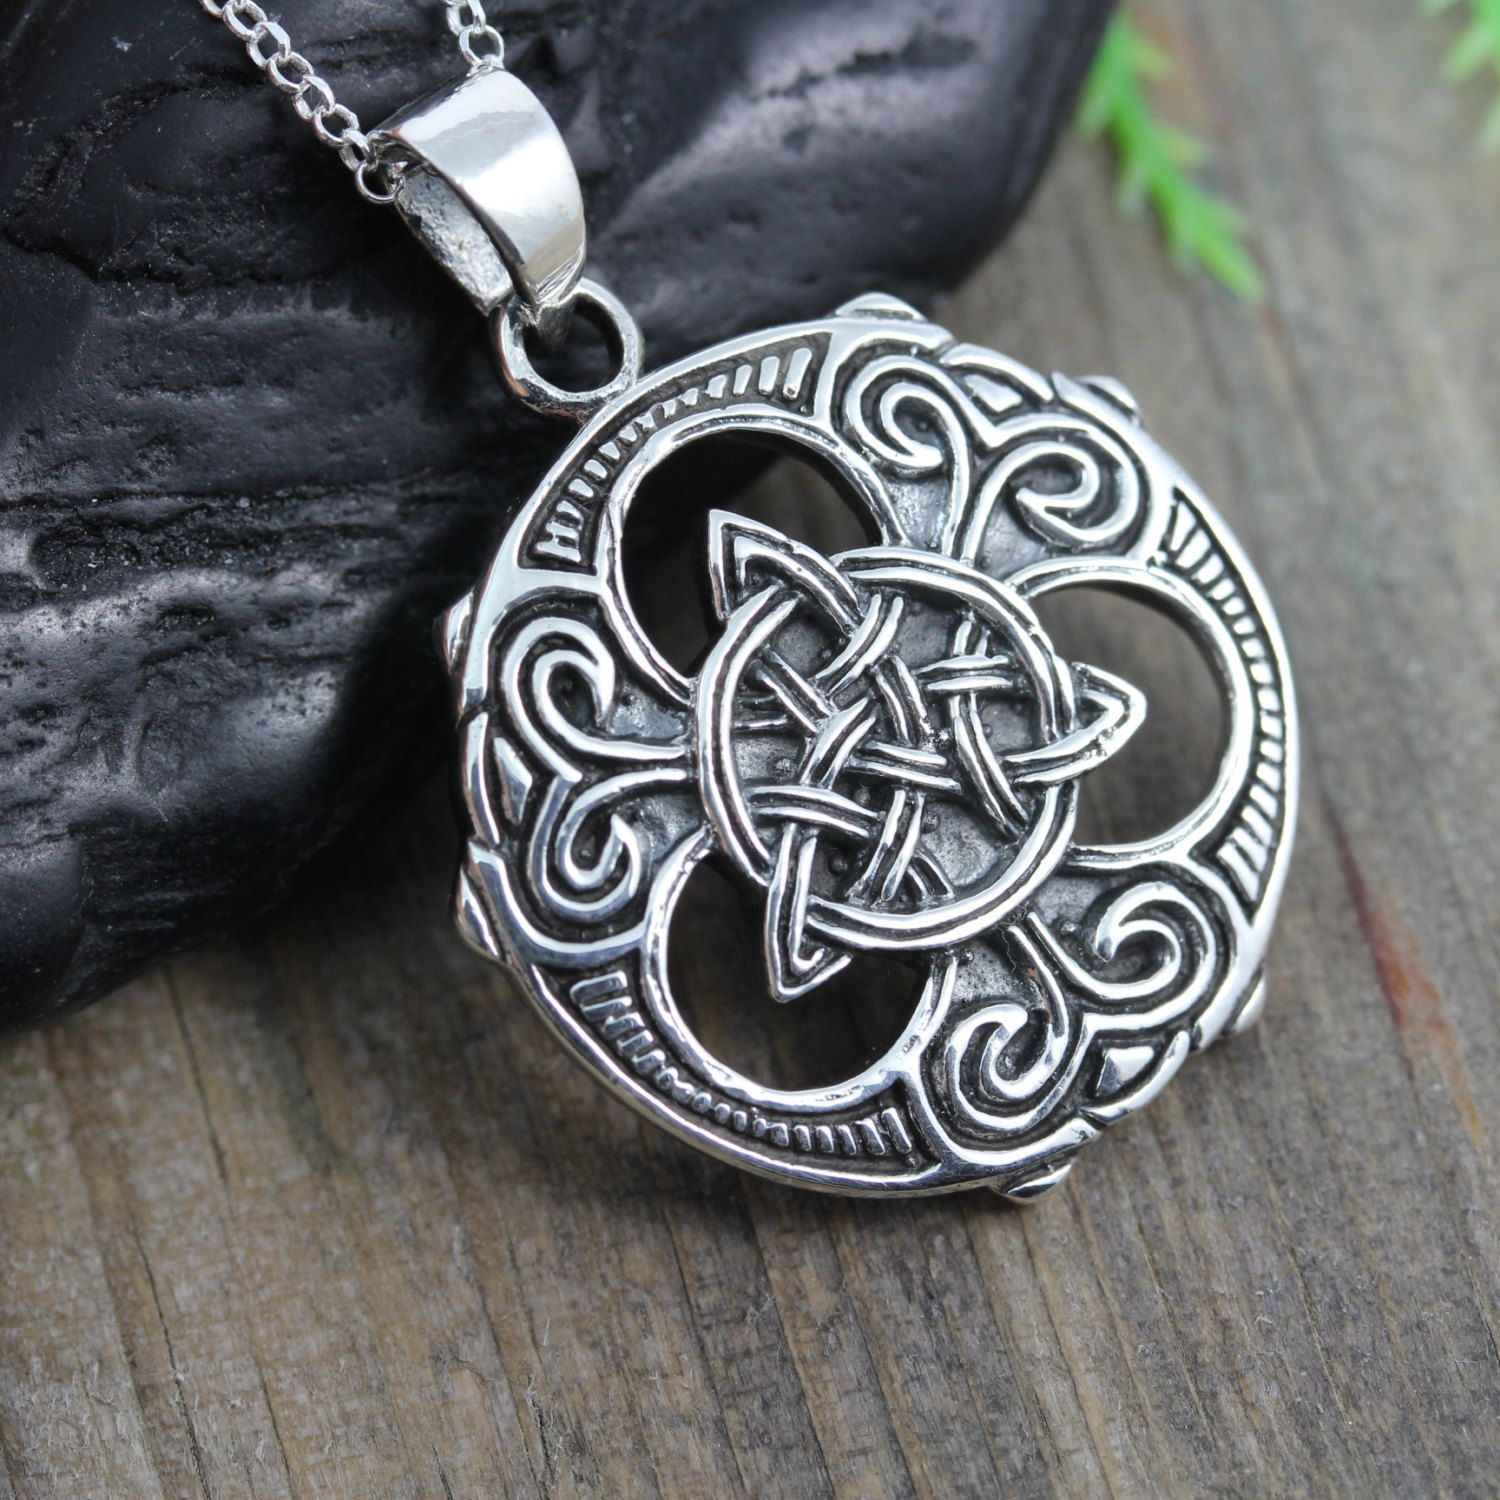 Mens Trinity Necklace Unisex Sterling Silver Trinity Knot Necklace Mens Irish Celtic Engraving No Include Celtic Jewelry Choose Chain Viking Jewelry Irish Jewelry Trinity Necklace